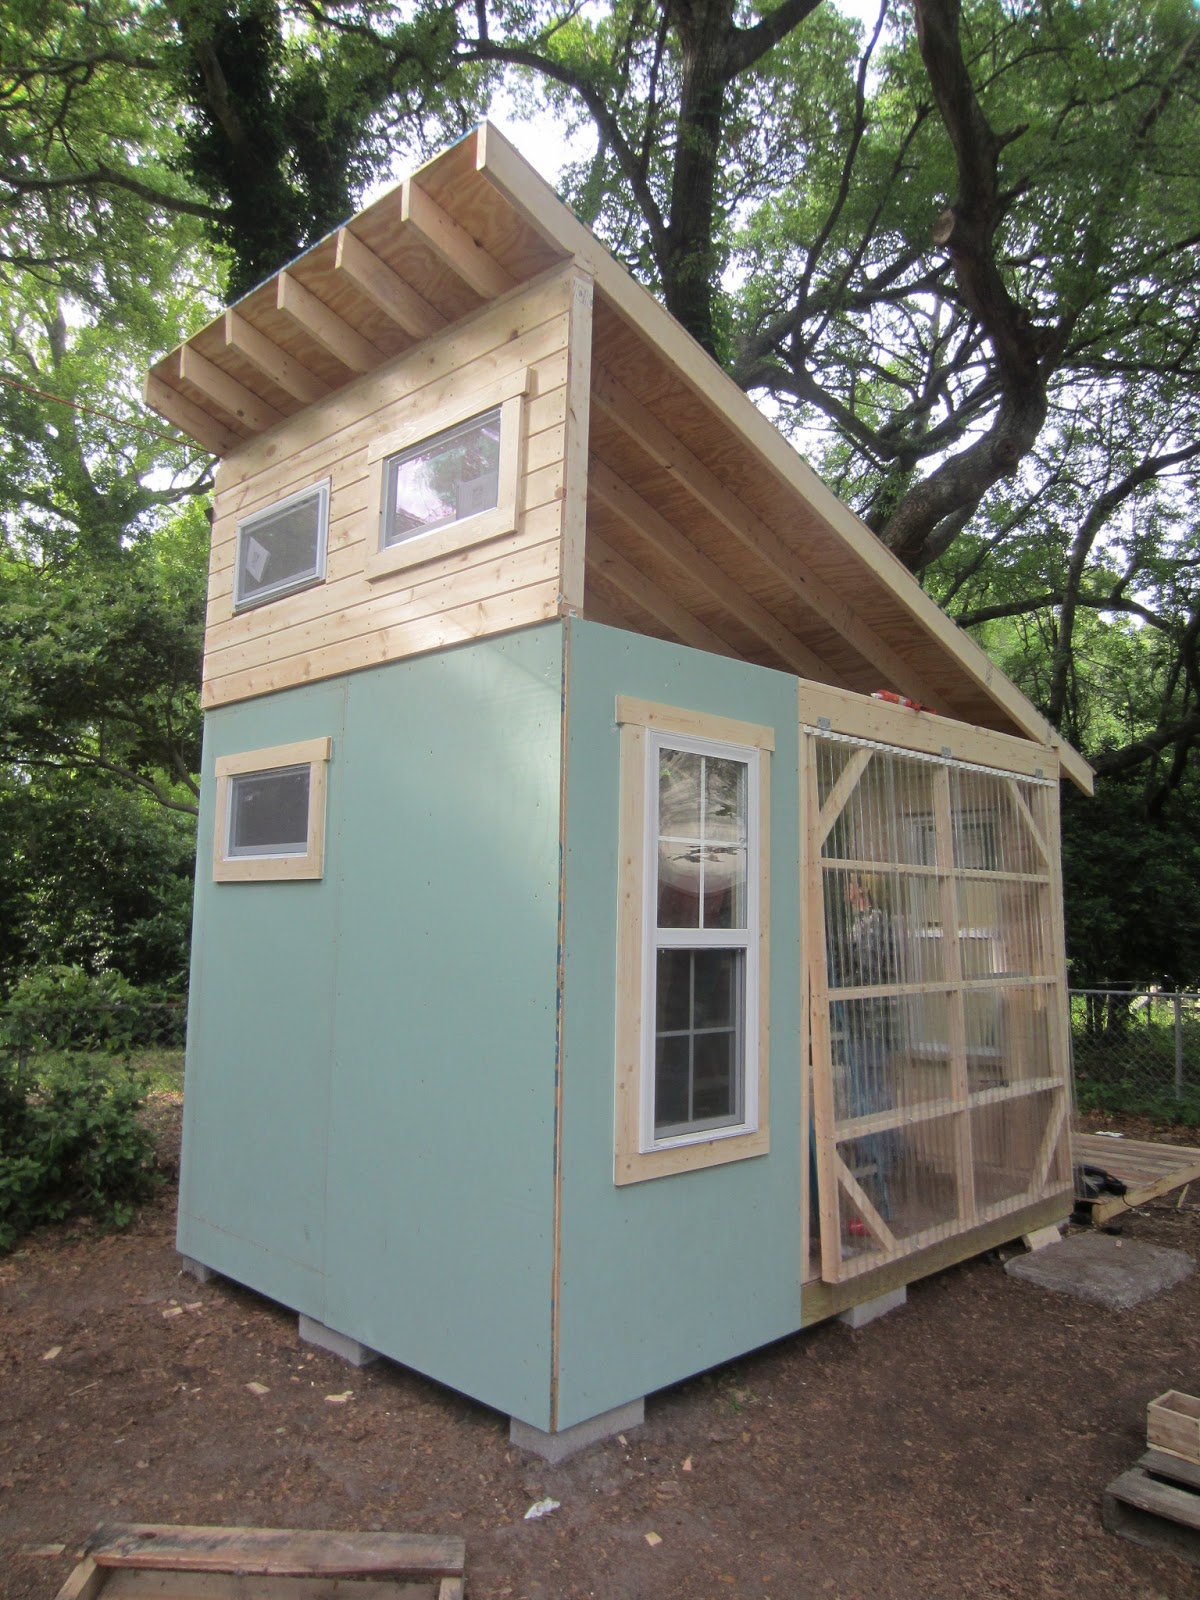 Relaxshackscom Tiny House Building Workshop in Wilmington NC